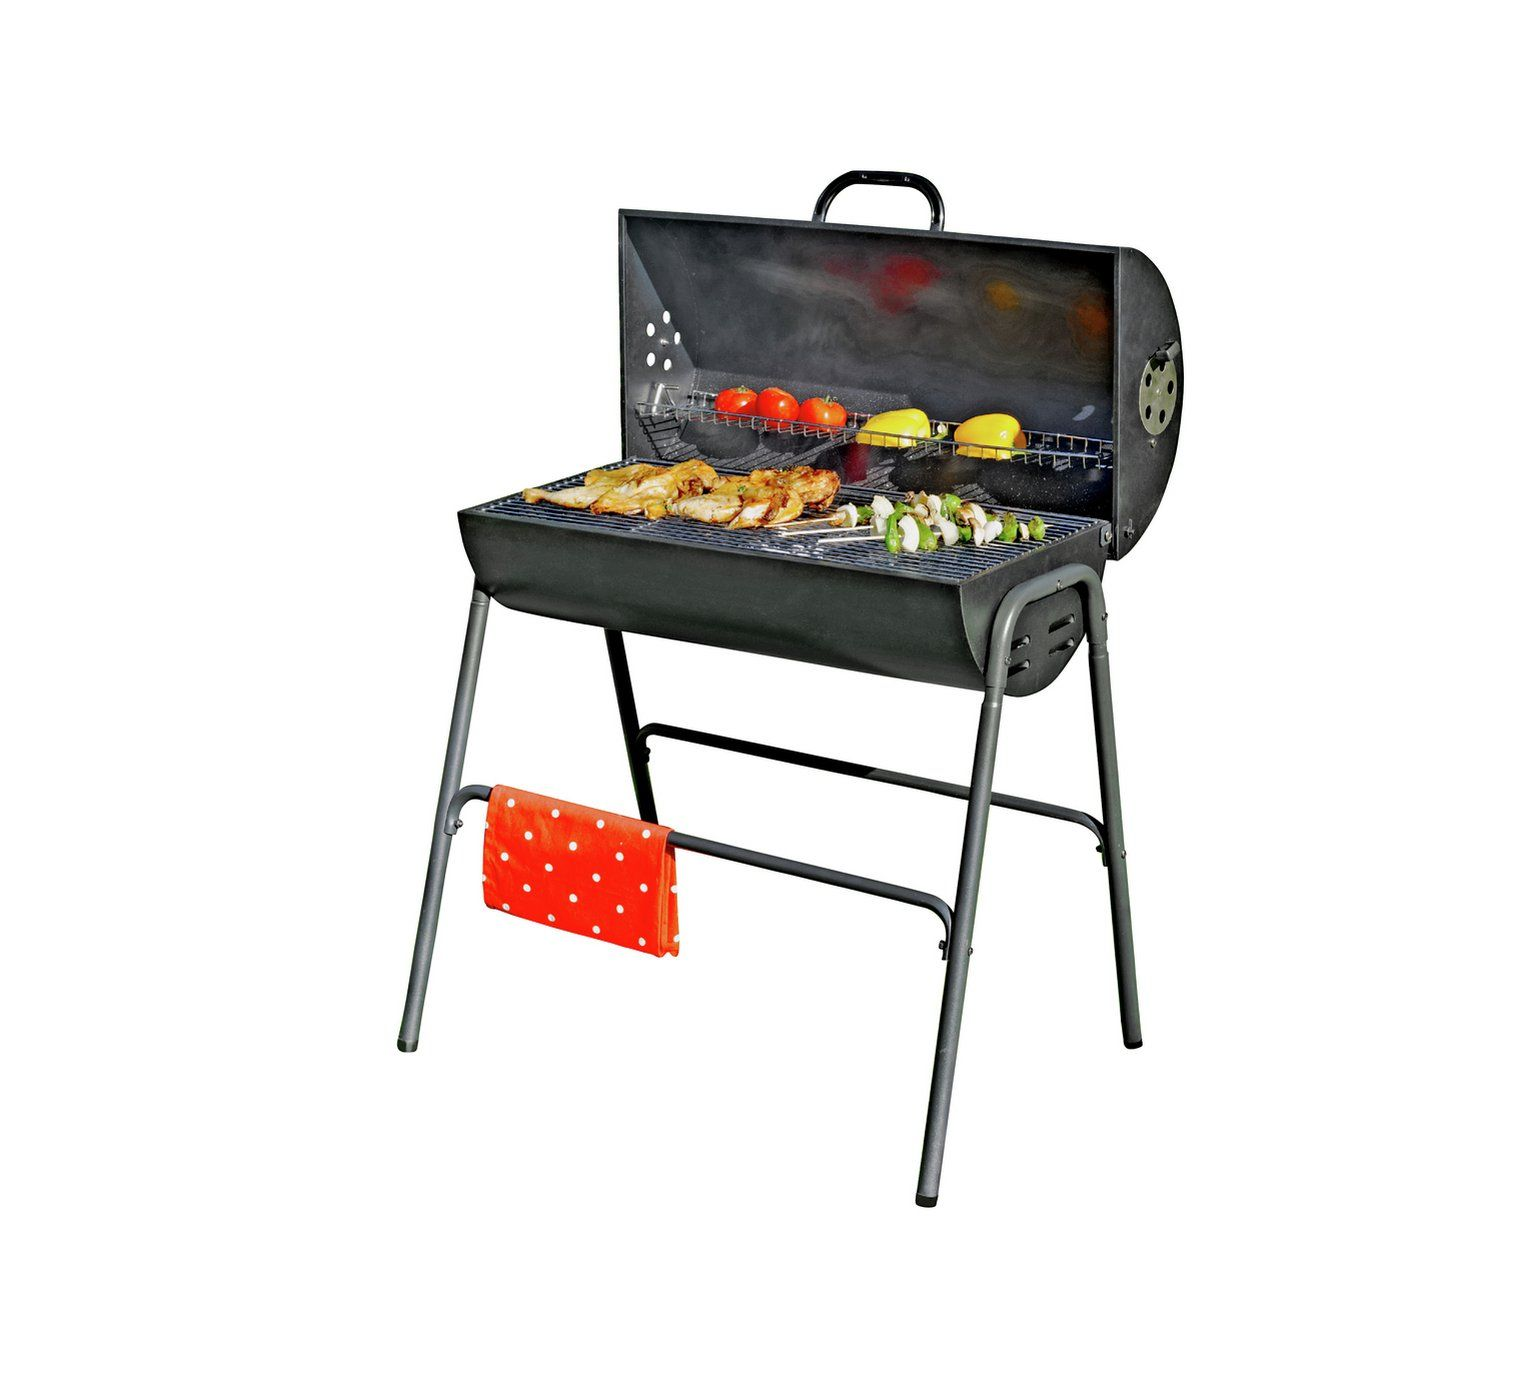 Buy argos home charcoal oil drum bbq with warming rack